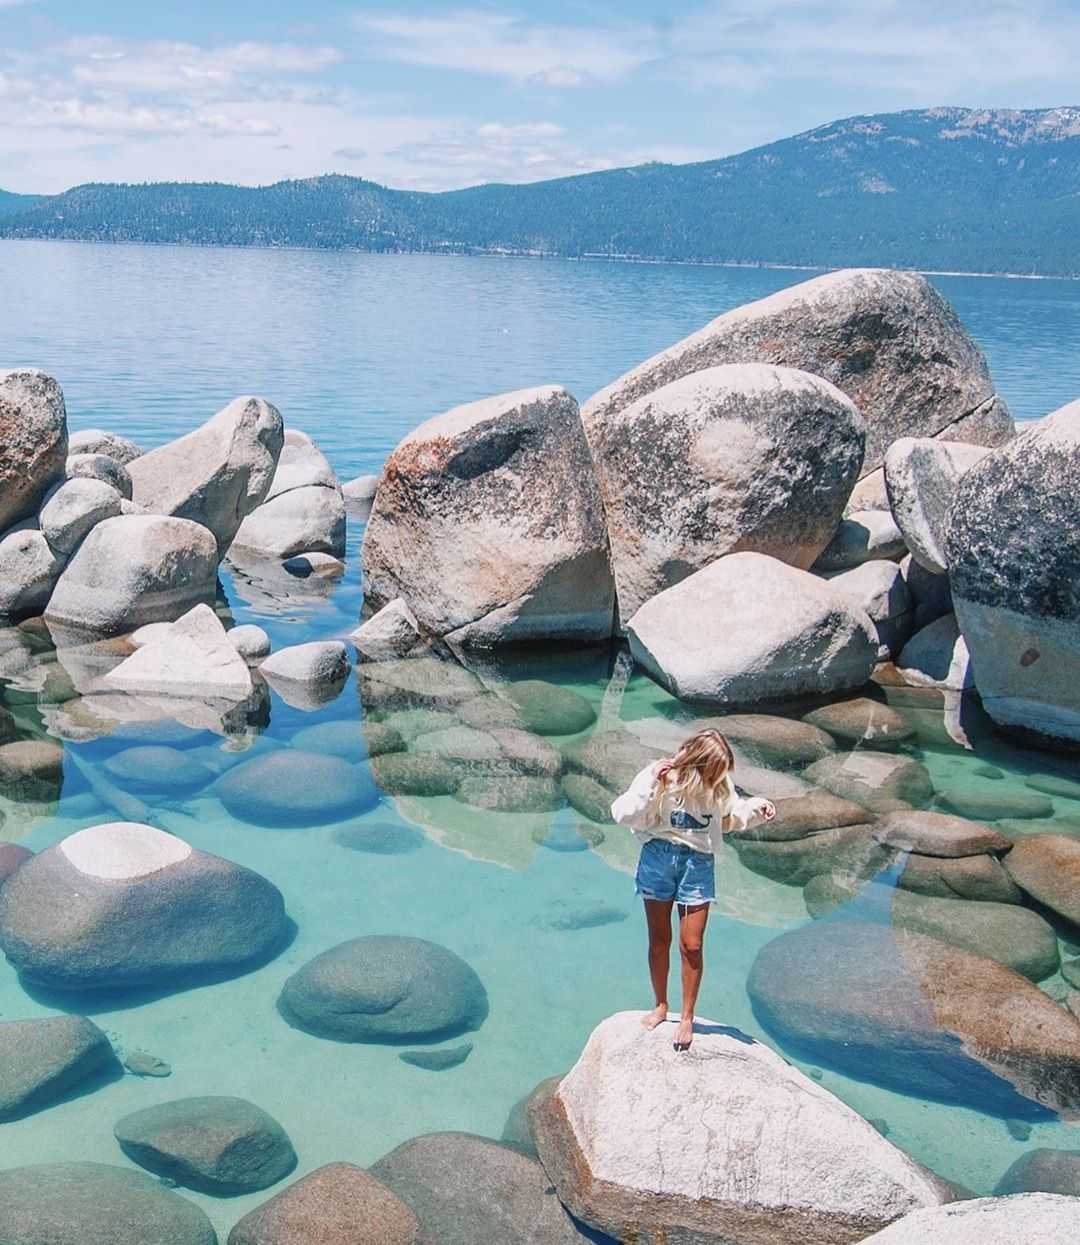 """JOSH & CLARA on Instagram: """"Clearest water we ever did see... seriously how is this place real??! .  #laketahoe #sandharbor #clearwater #emeraldbay #tahoe #roadtrip…"""""""